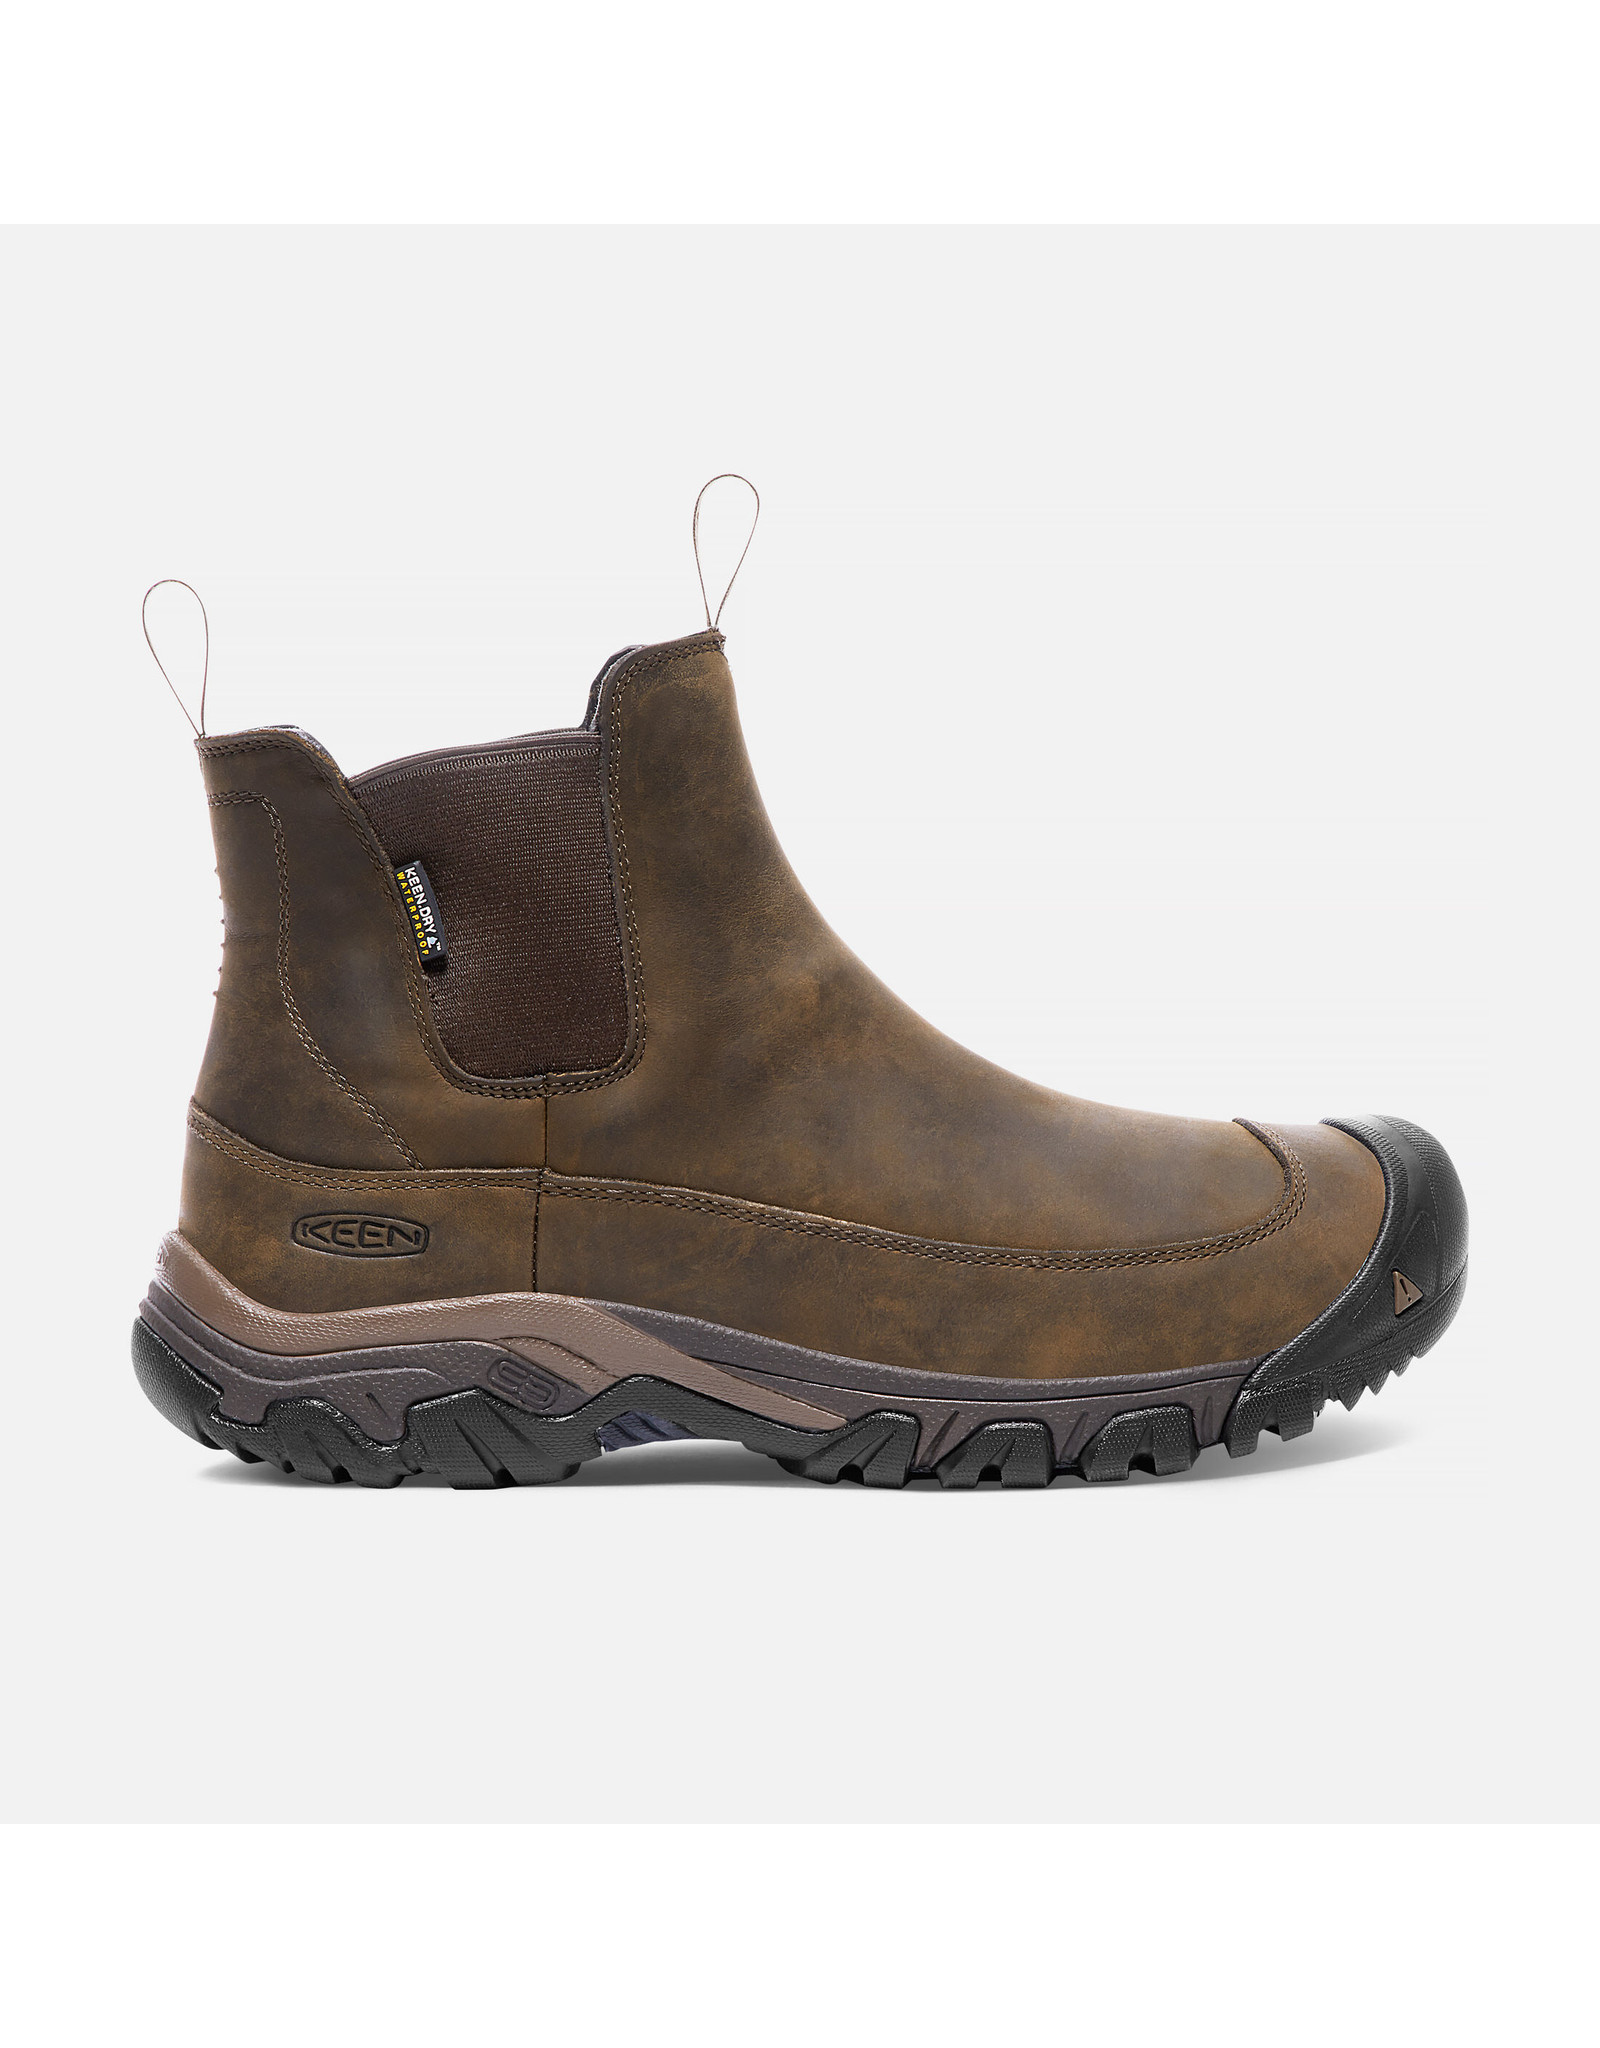 KEEN MEN'S ANCHORAGE III WATERPROOF-DARK EARTH/MULCH